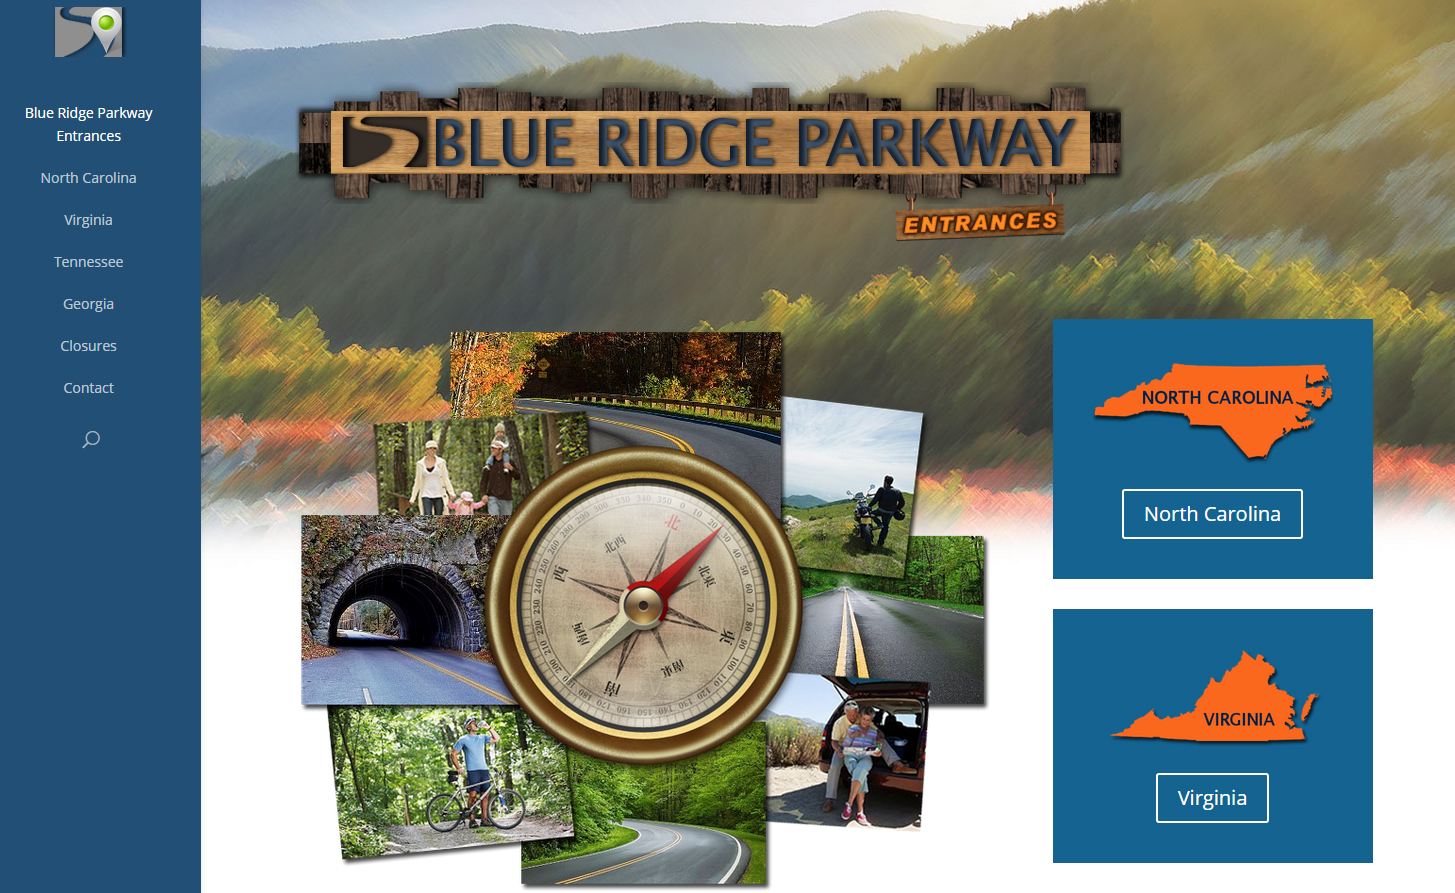 Blue Ridge Parkway Entrances